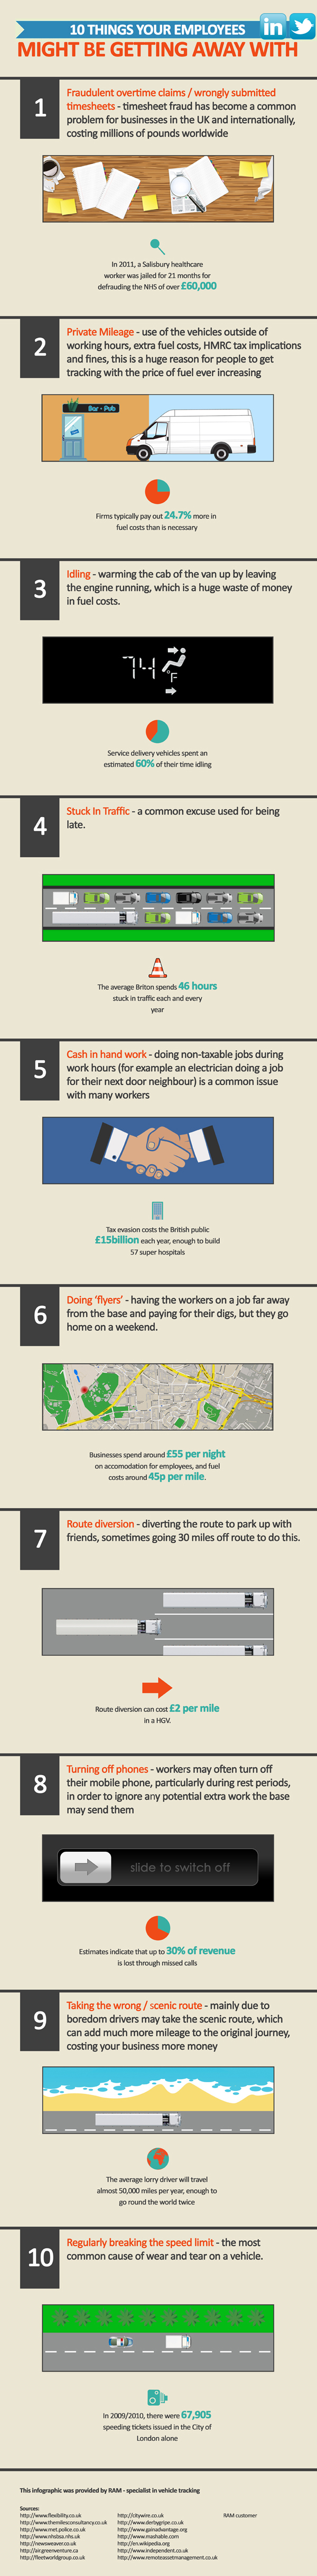 Tracking-Employees-Car-Usage-Infographic